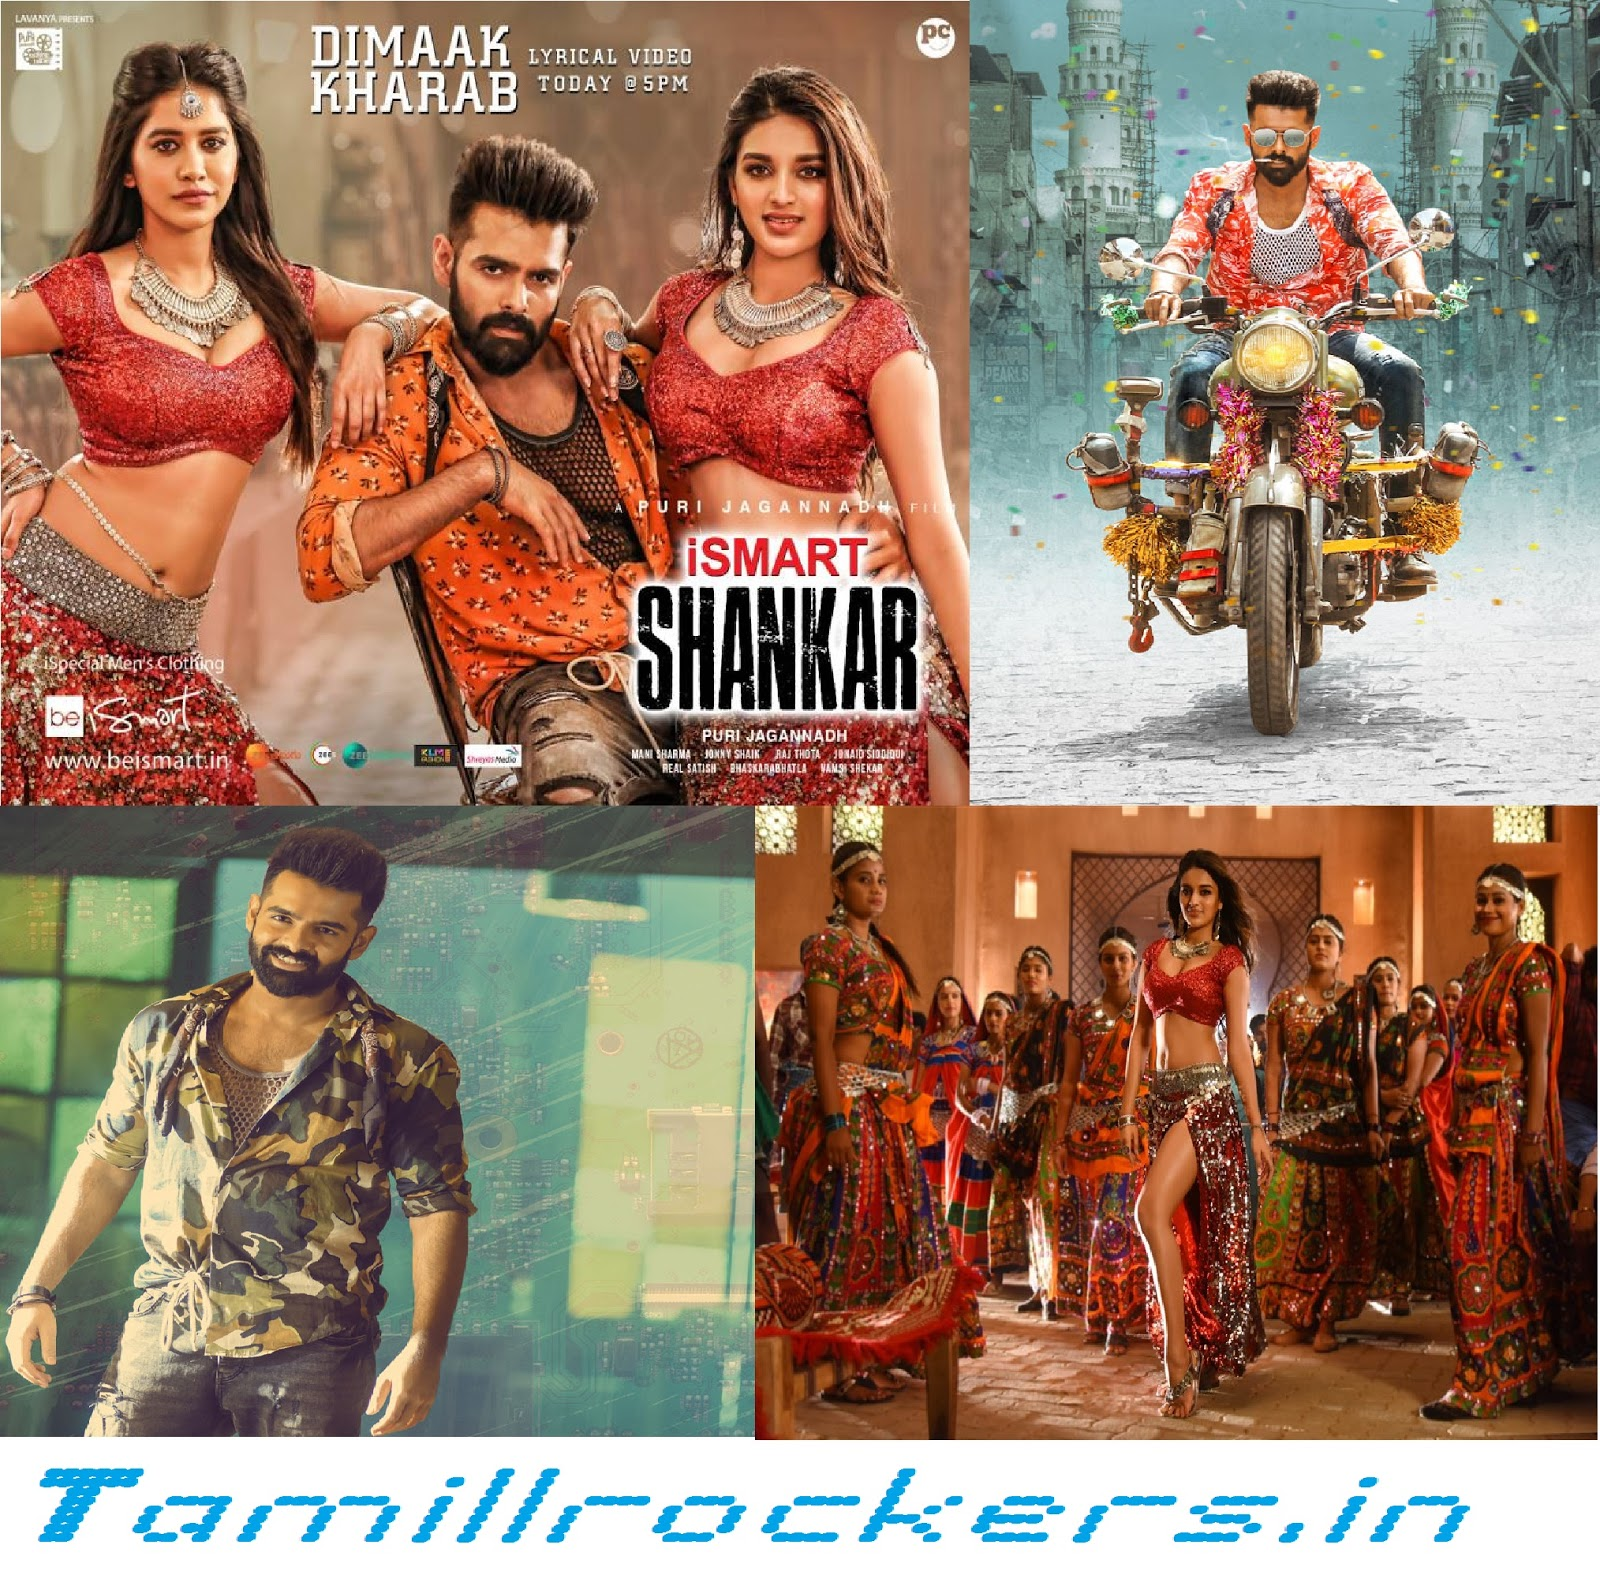 Ismart Shankar Full Movie Tamilrockers 2019 Latest Tamil